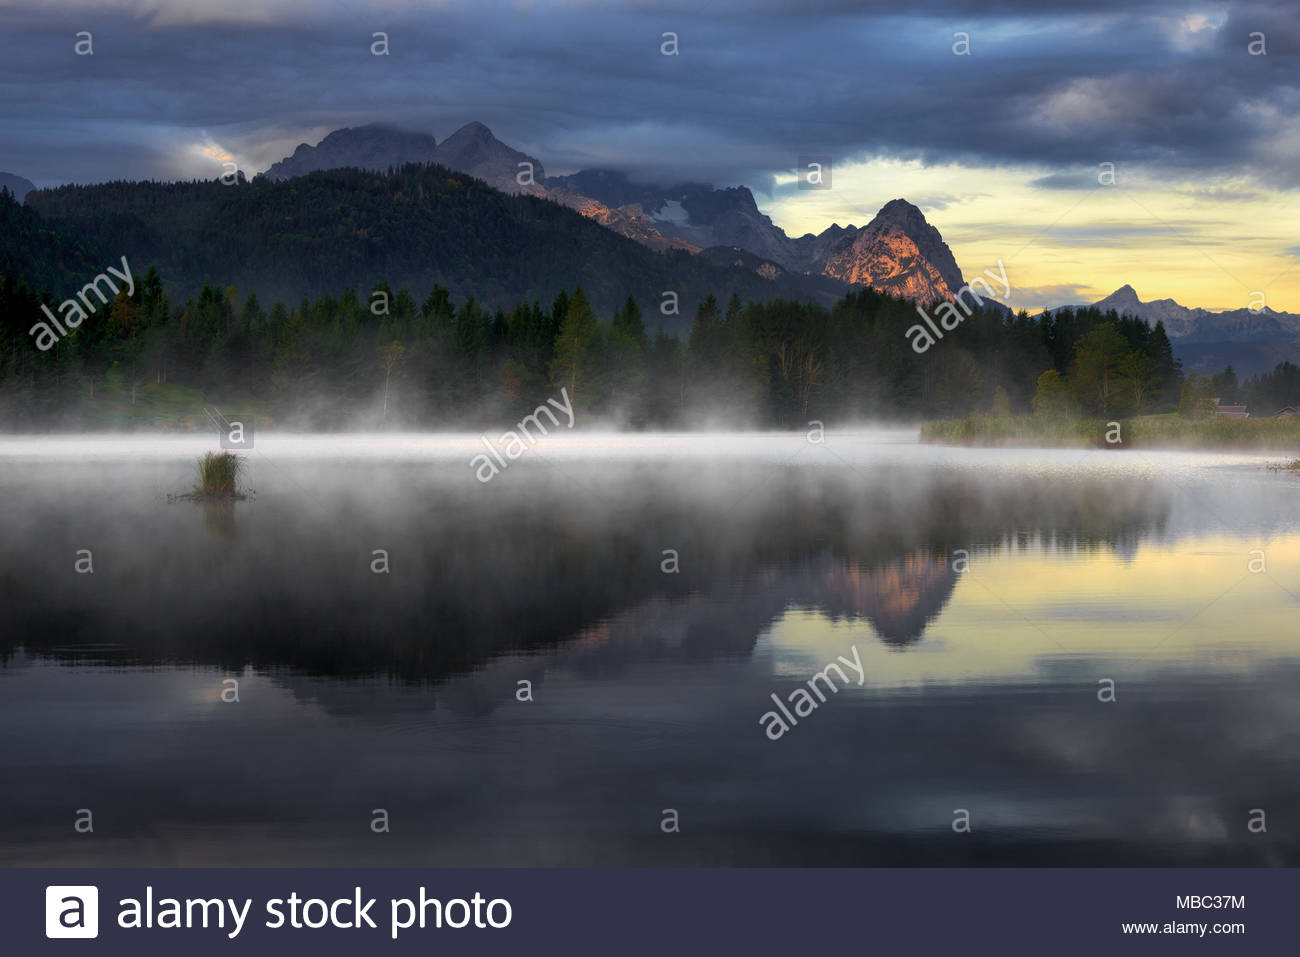 Wetterstein mountain reflection during autumn day with morning fog over Geroldsee lake, Bavarian Alps, Bavaria, Germany. - Stock Image